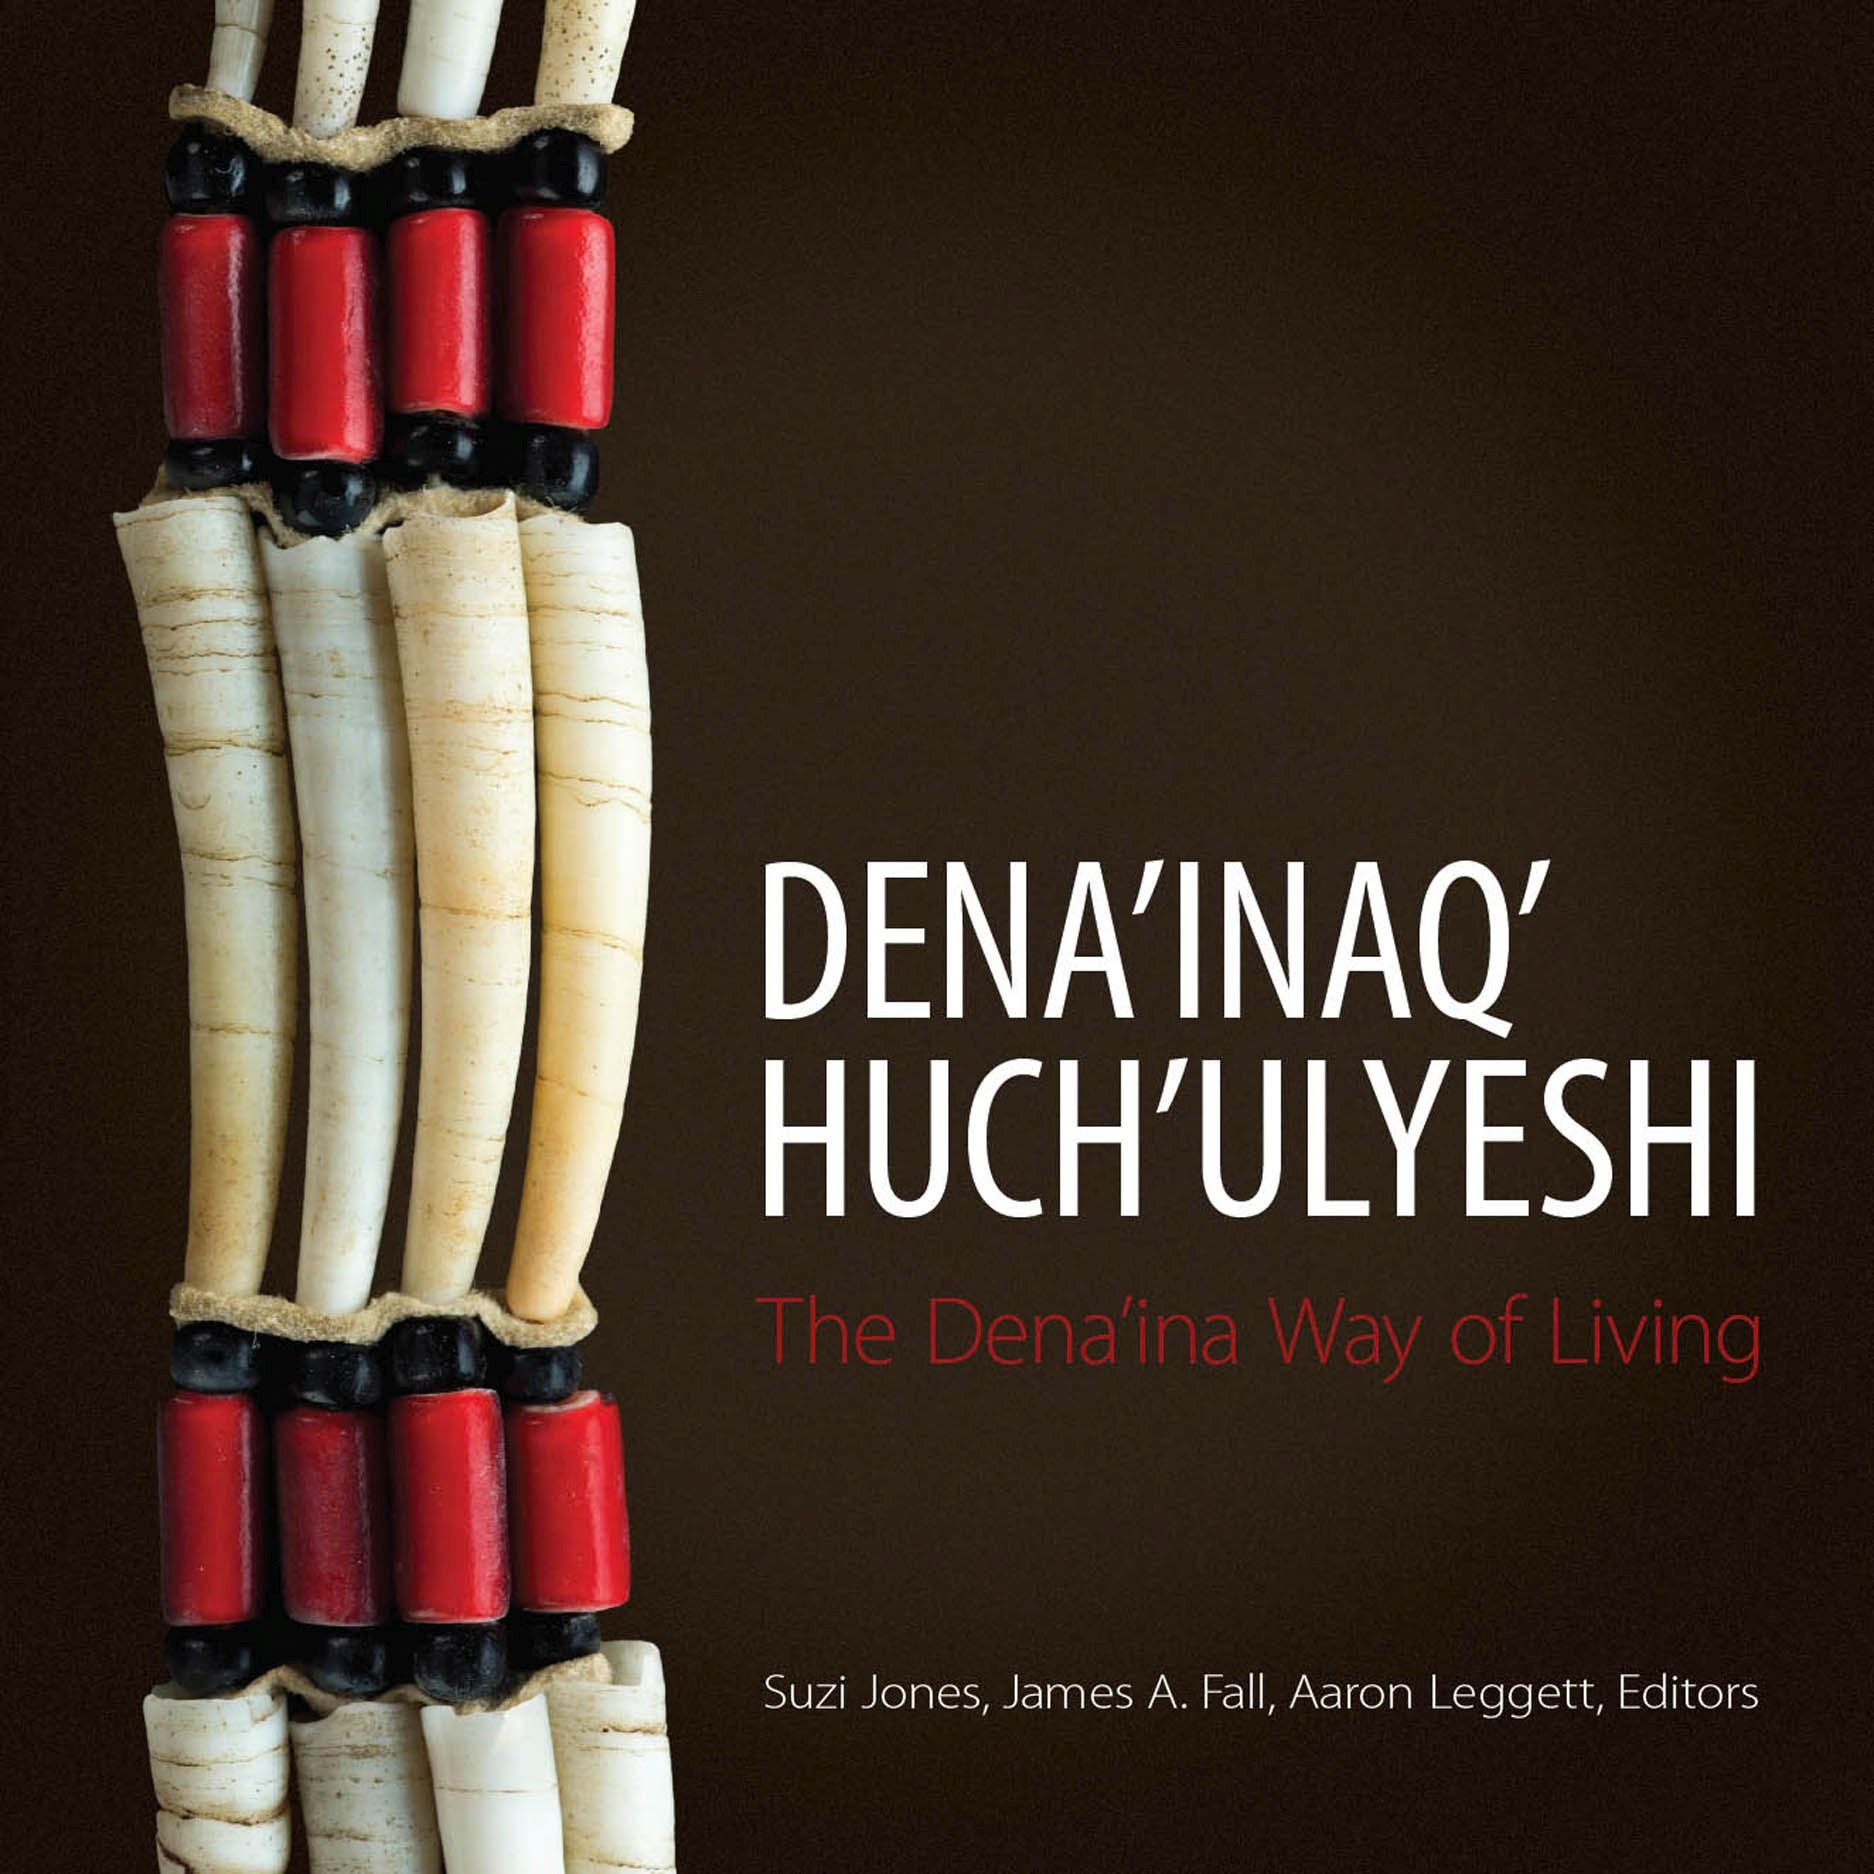 Dena'inaq' Huch'ulyeshi: The Dena'ina Way of Living